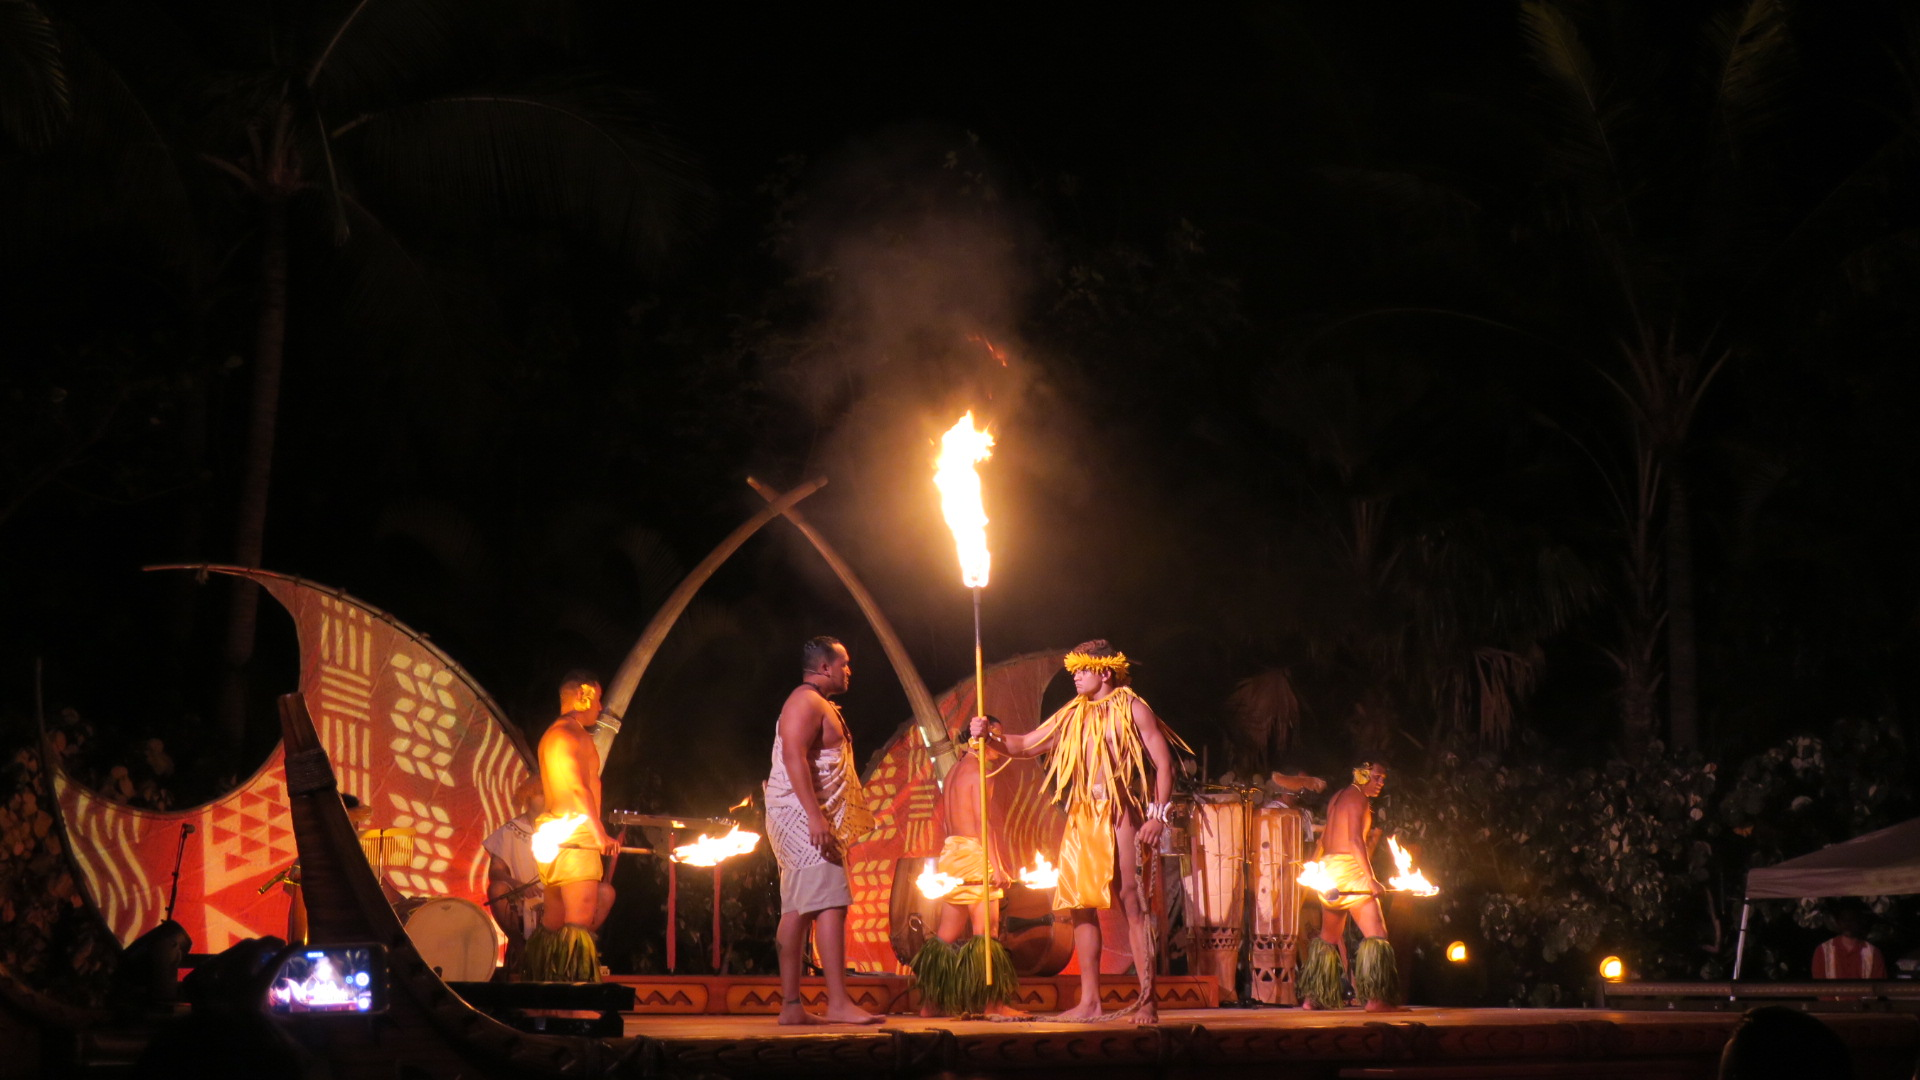 The luau at Disney's Aulani Resort at Kapolei in Oahu, Hawaii (photo by Carrie Coolidge)